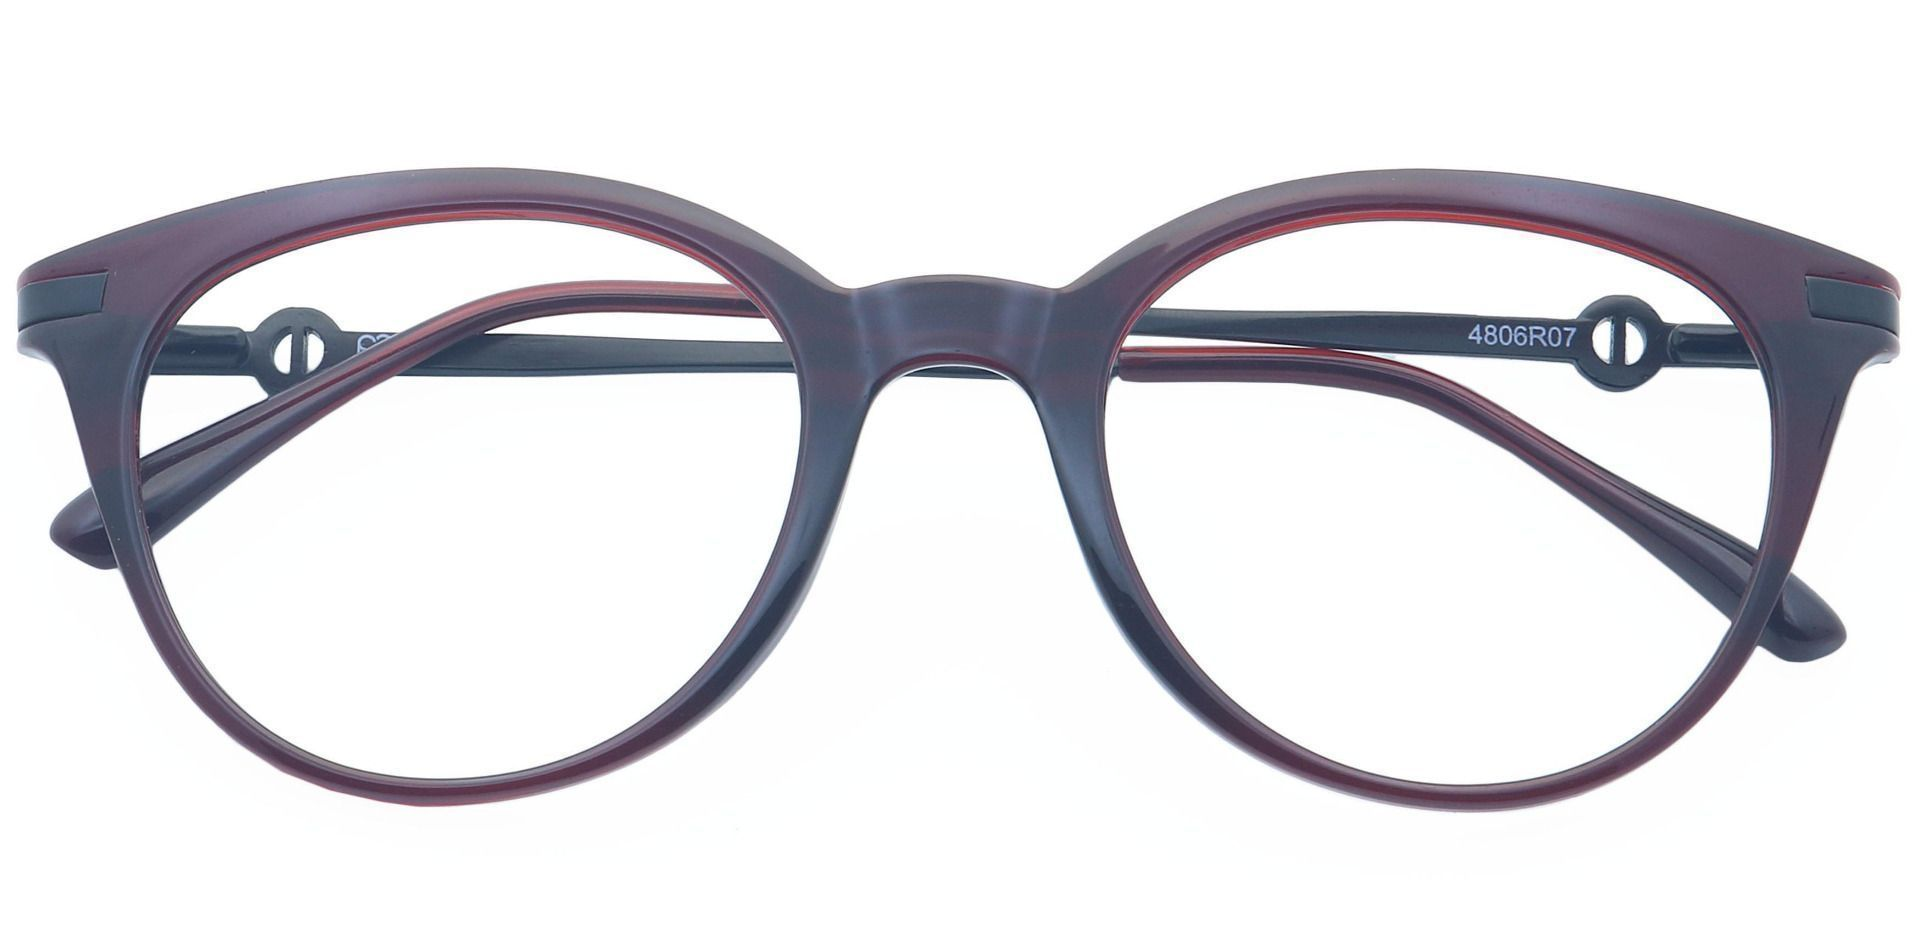 Penny Oval Prescription Glasses - Red